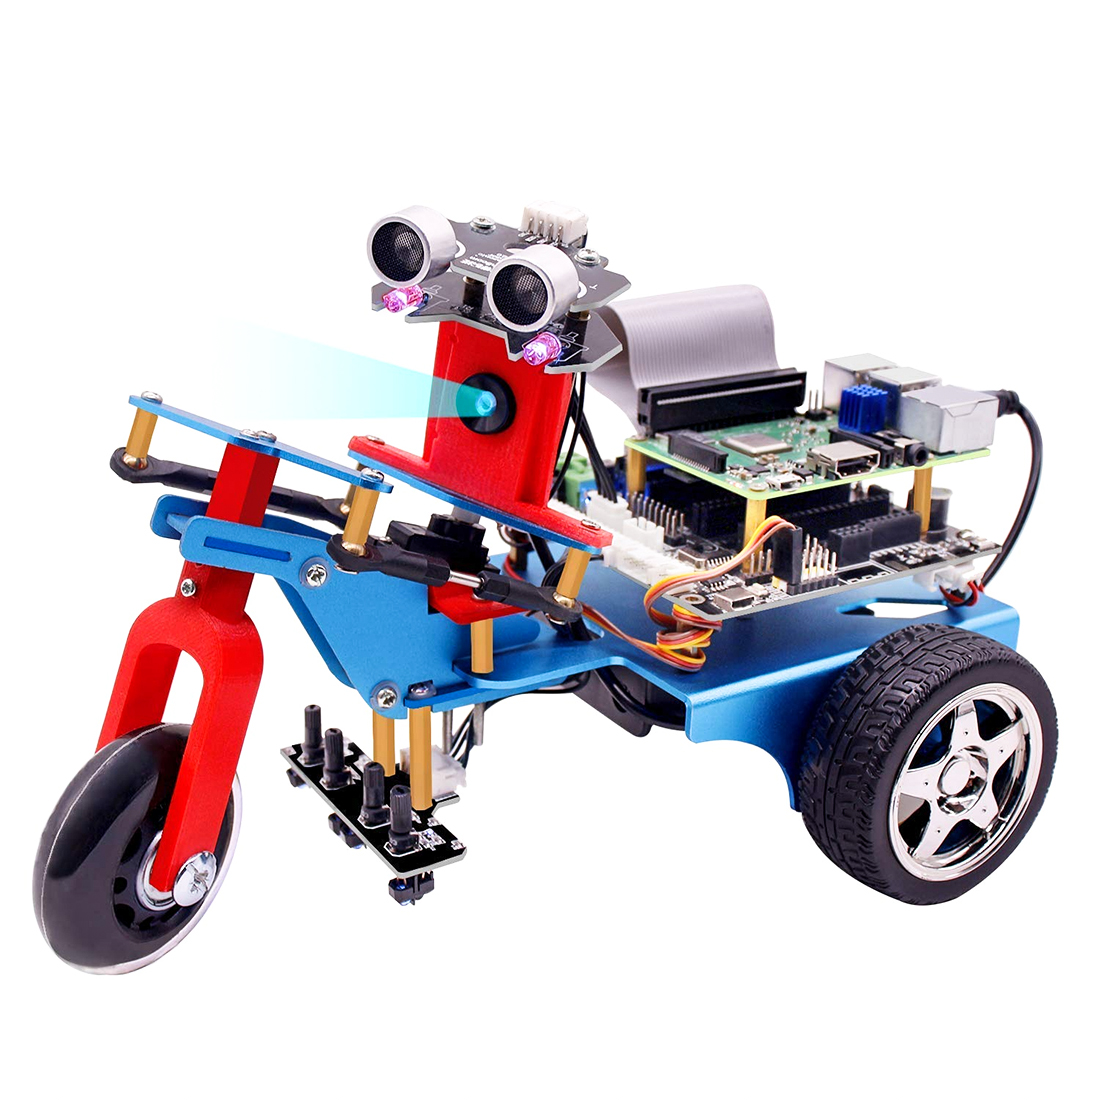 Three-Wheeled Car Shape Smart Robot Car Kit DIY Programmable Robot Kit For Raspberry4/1G(Without/Including:Raspberry Pi)